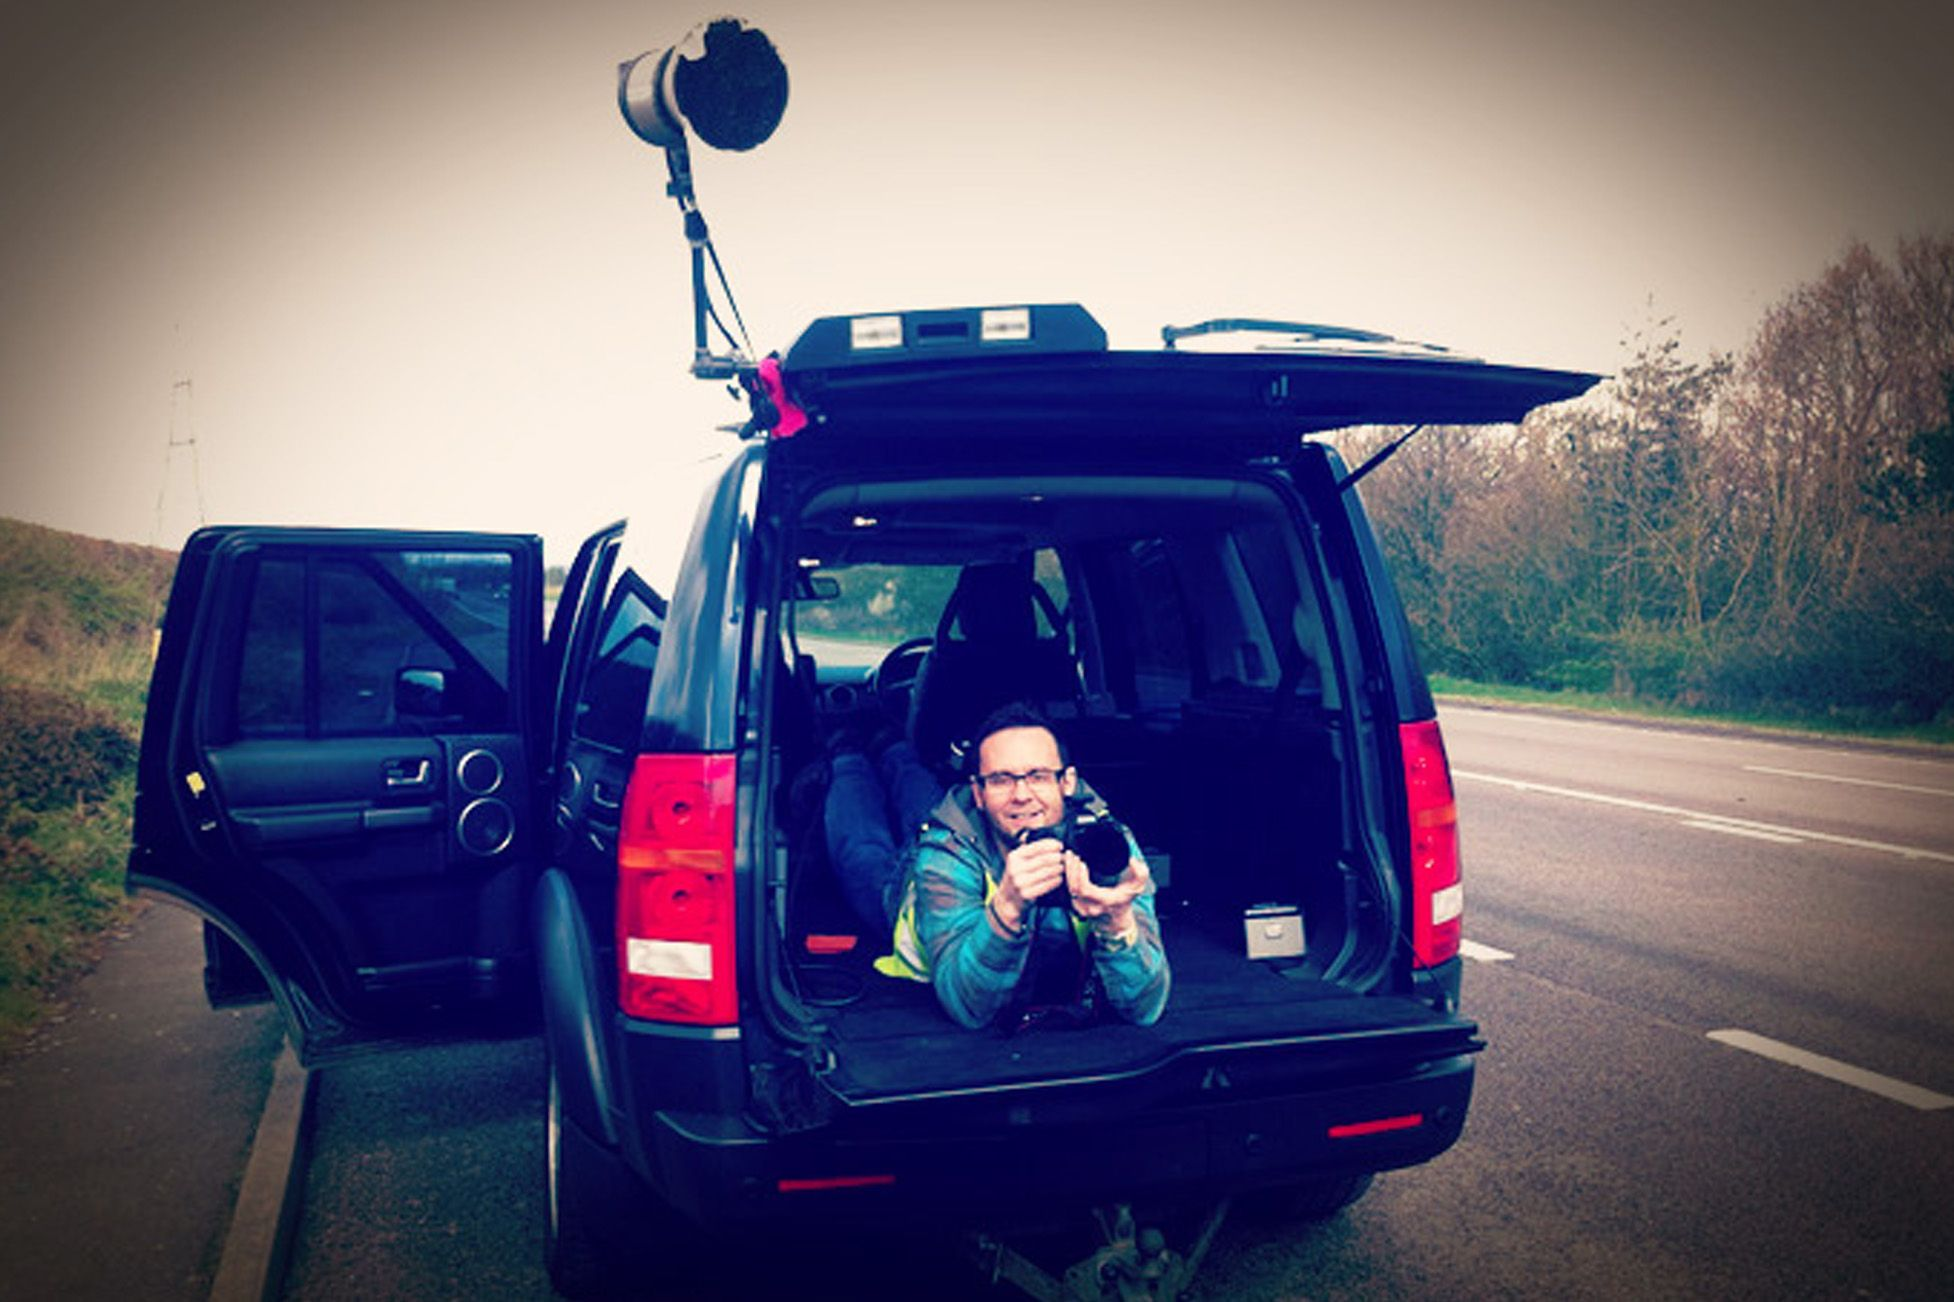 Just what is photographer Dave doing in the back of that 4x4? 1